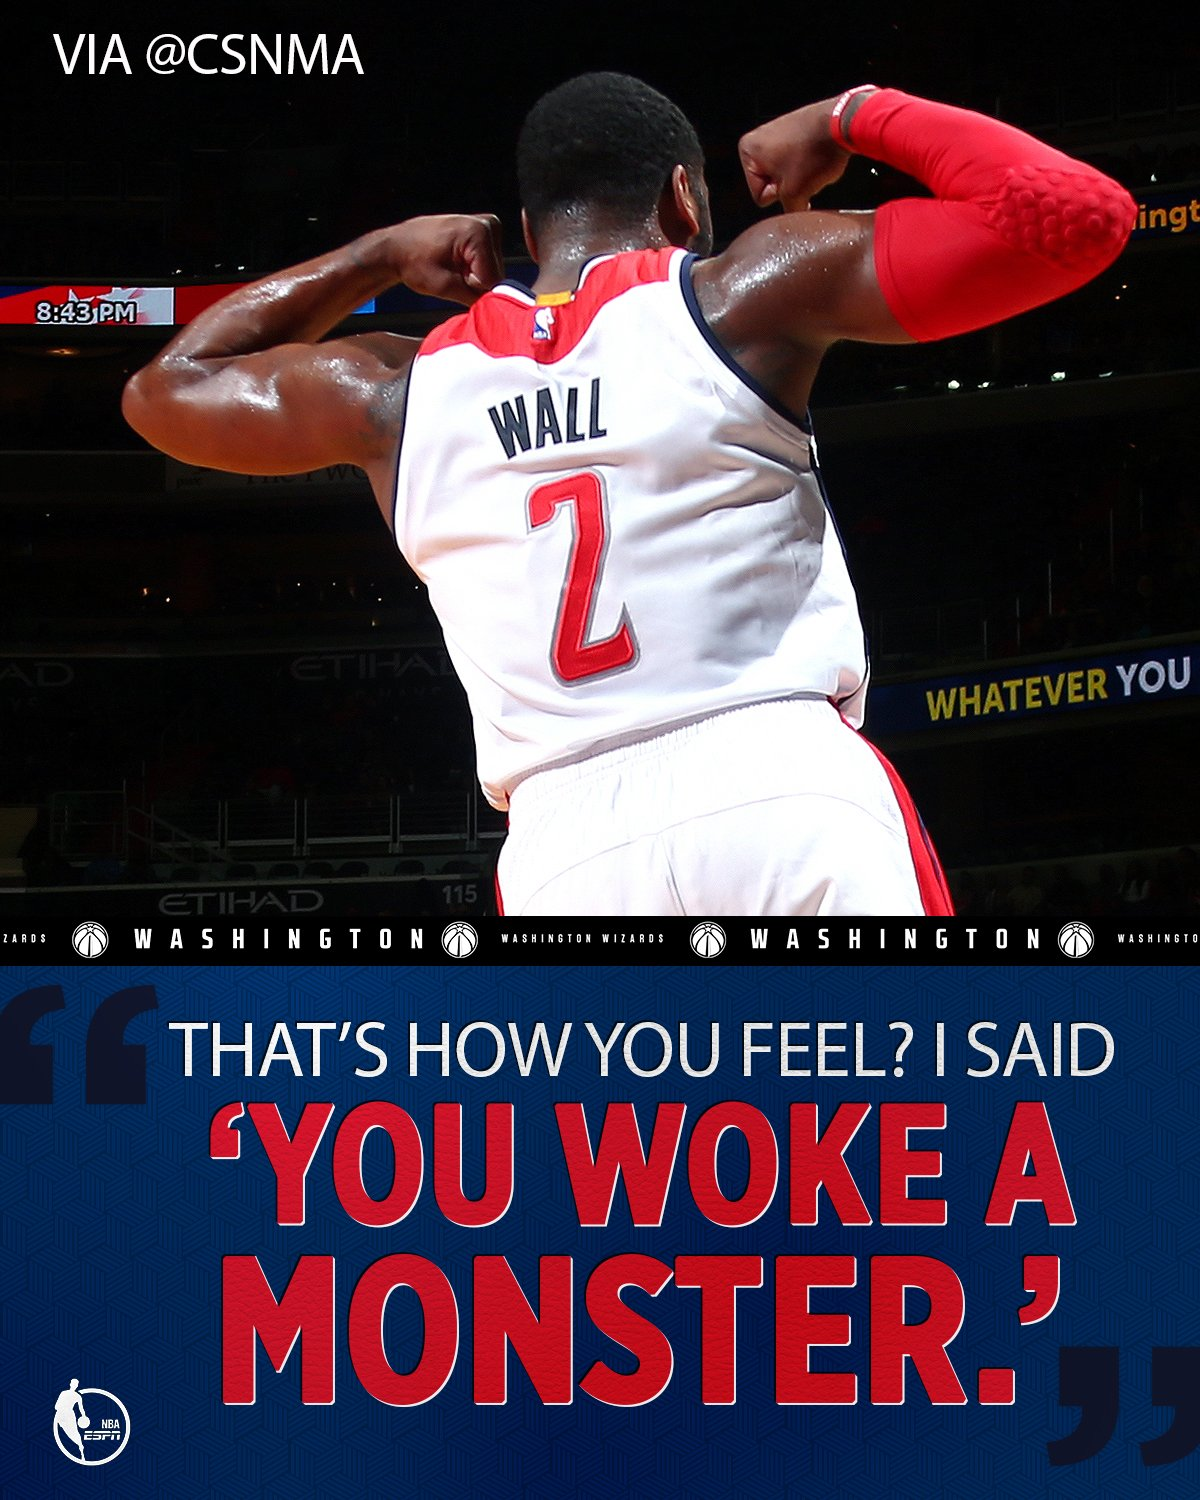 John Wall was not a fan of Denzel Valentine's 4th quarter dance moves. https://t.co/h6LKvIVf6e